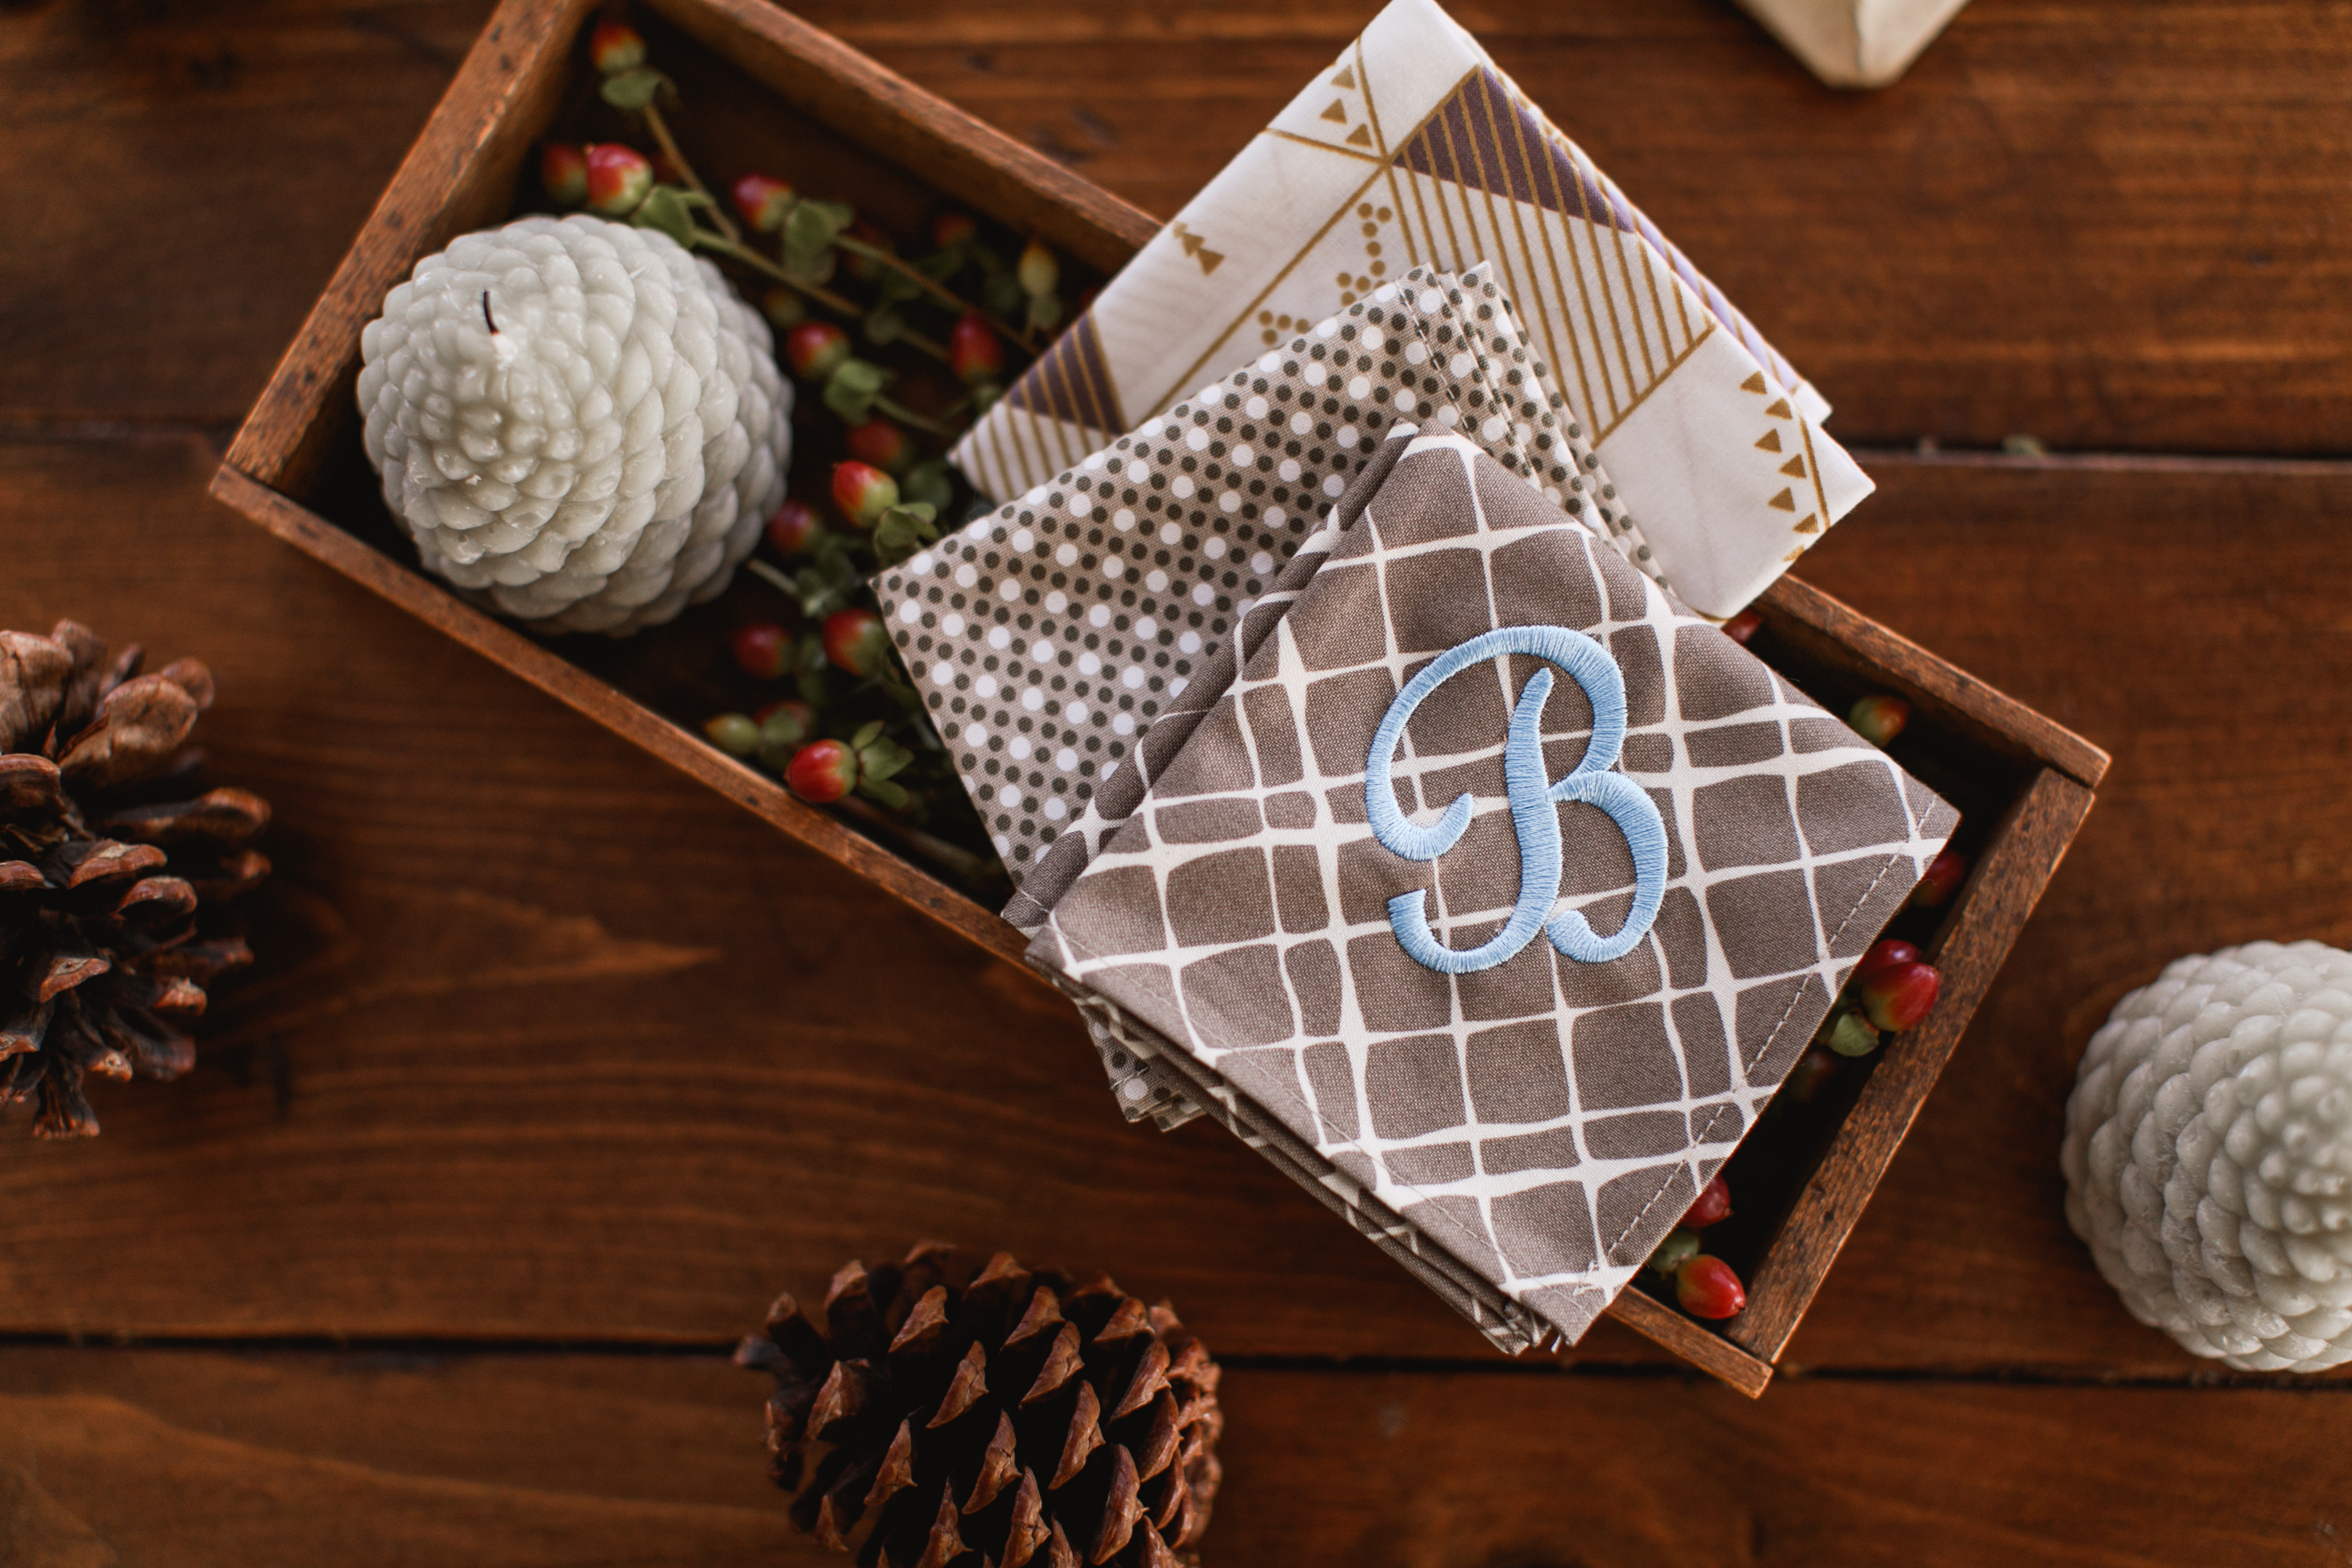 monogrammed-men-s-handkerchief-holiday.jpg